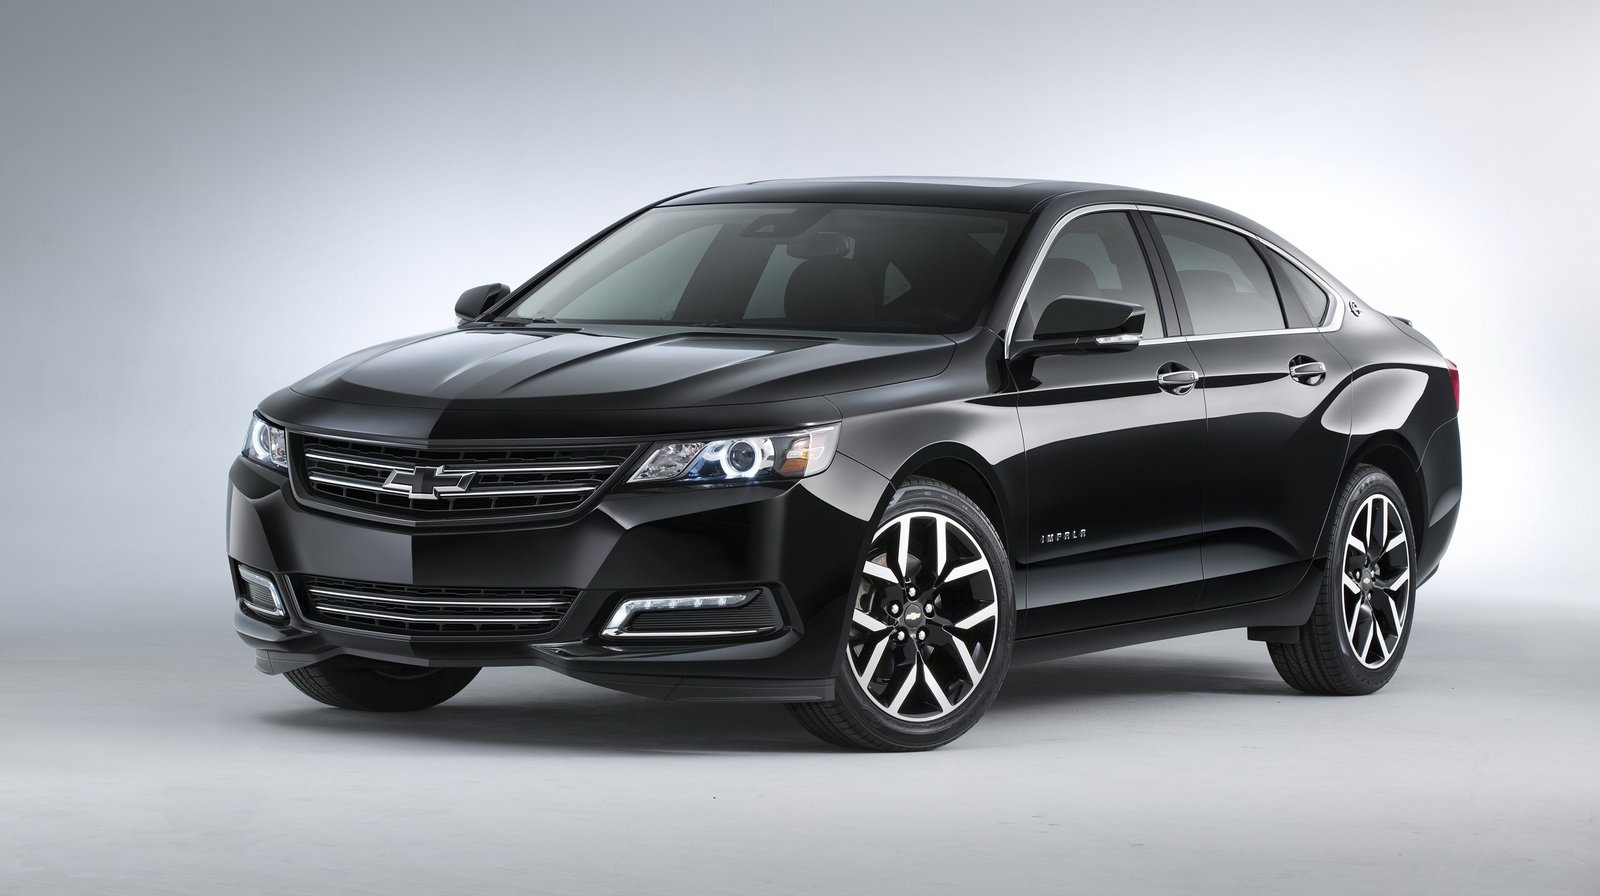 Chevrolet Impala Prices, Reviews and Pictures   U.S. News & World ...